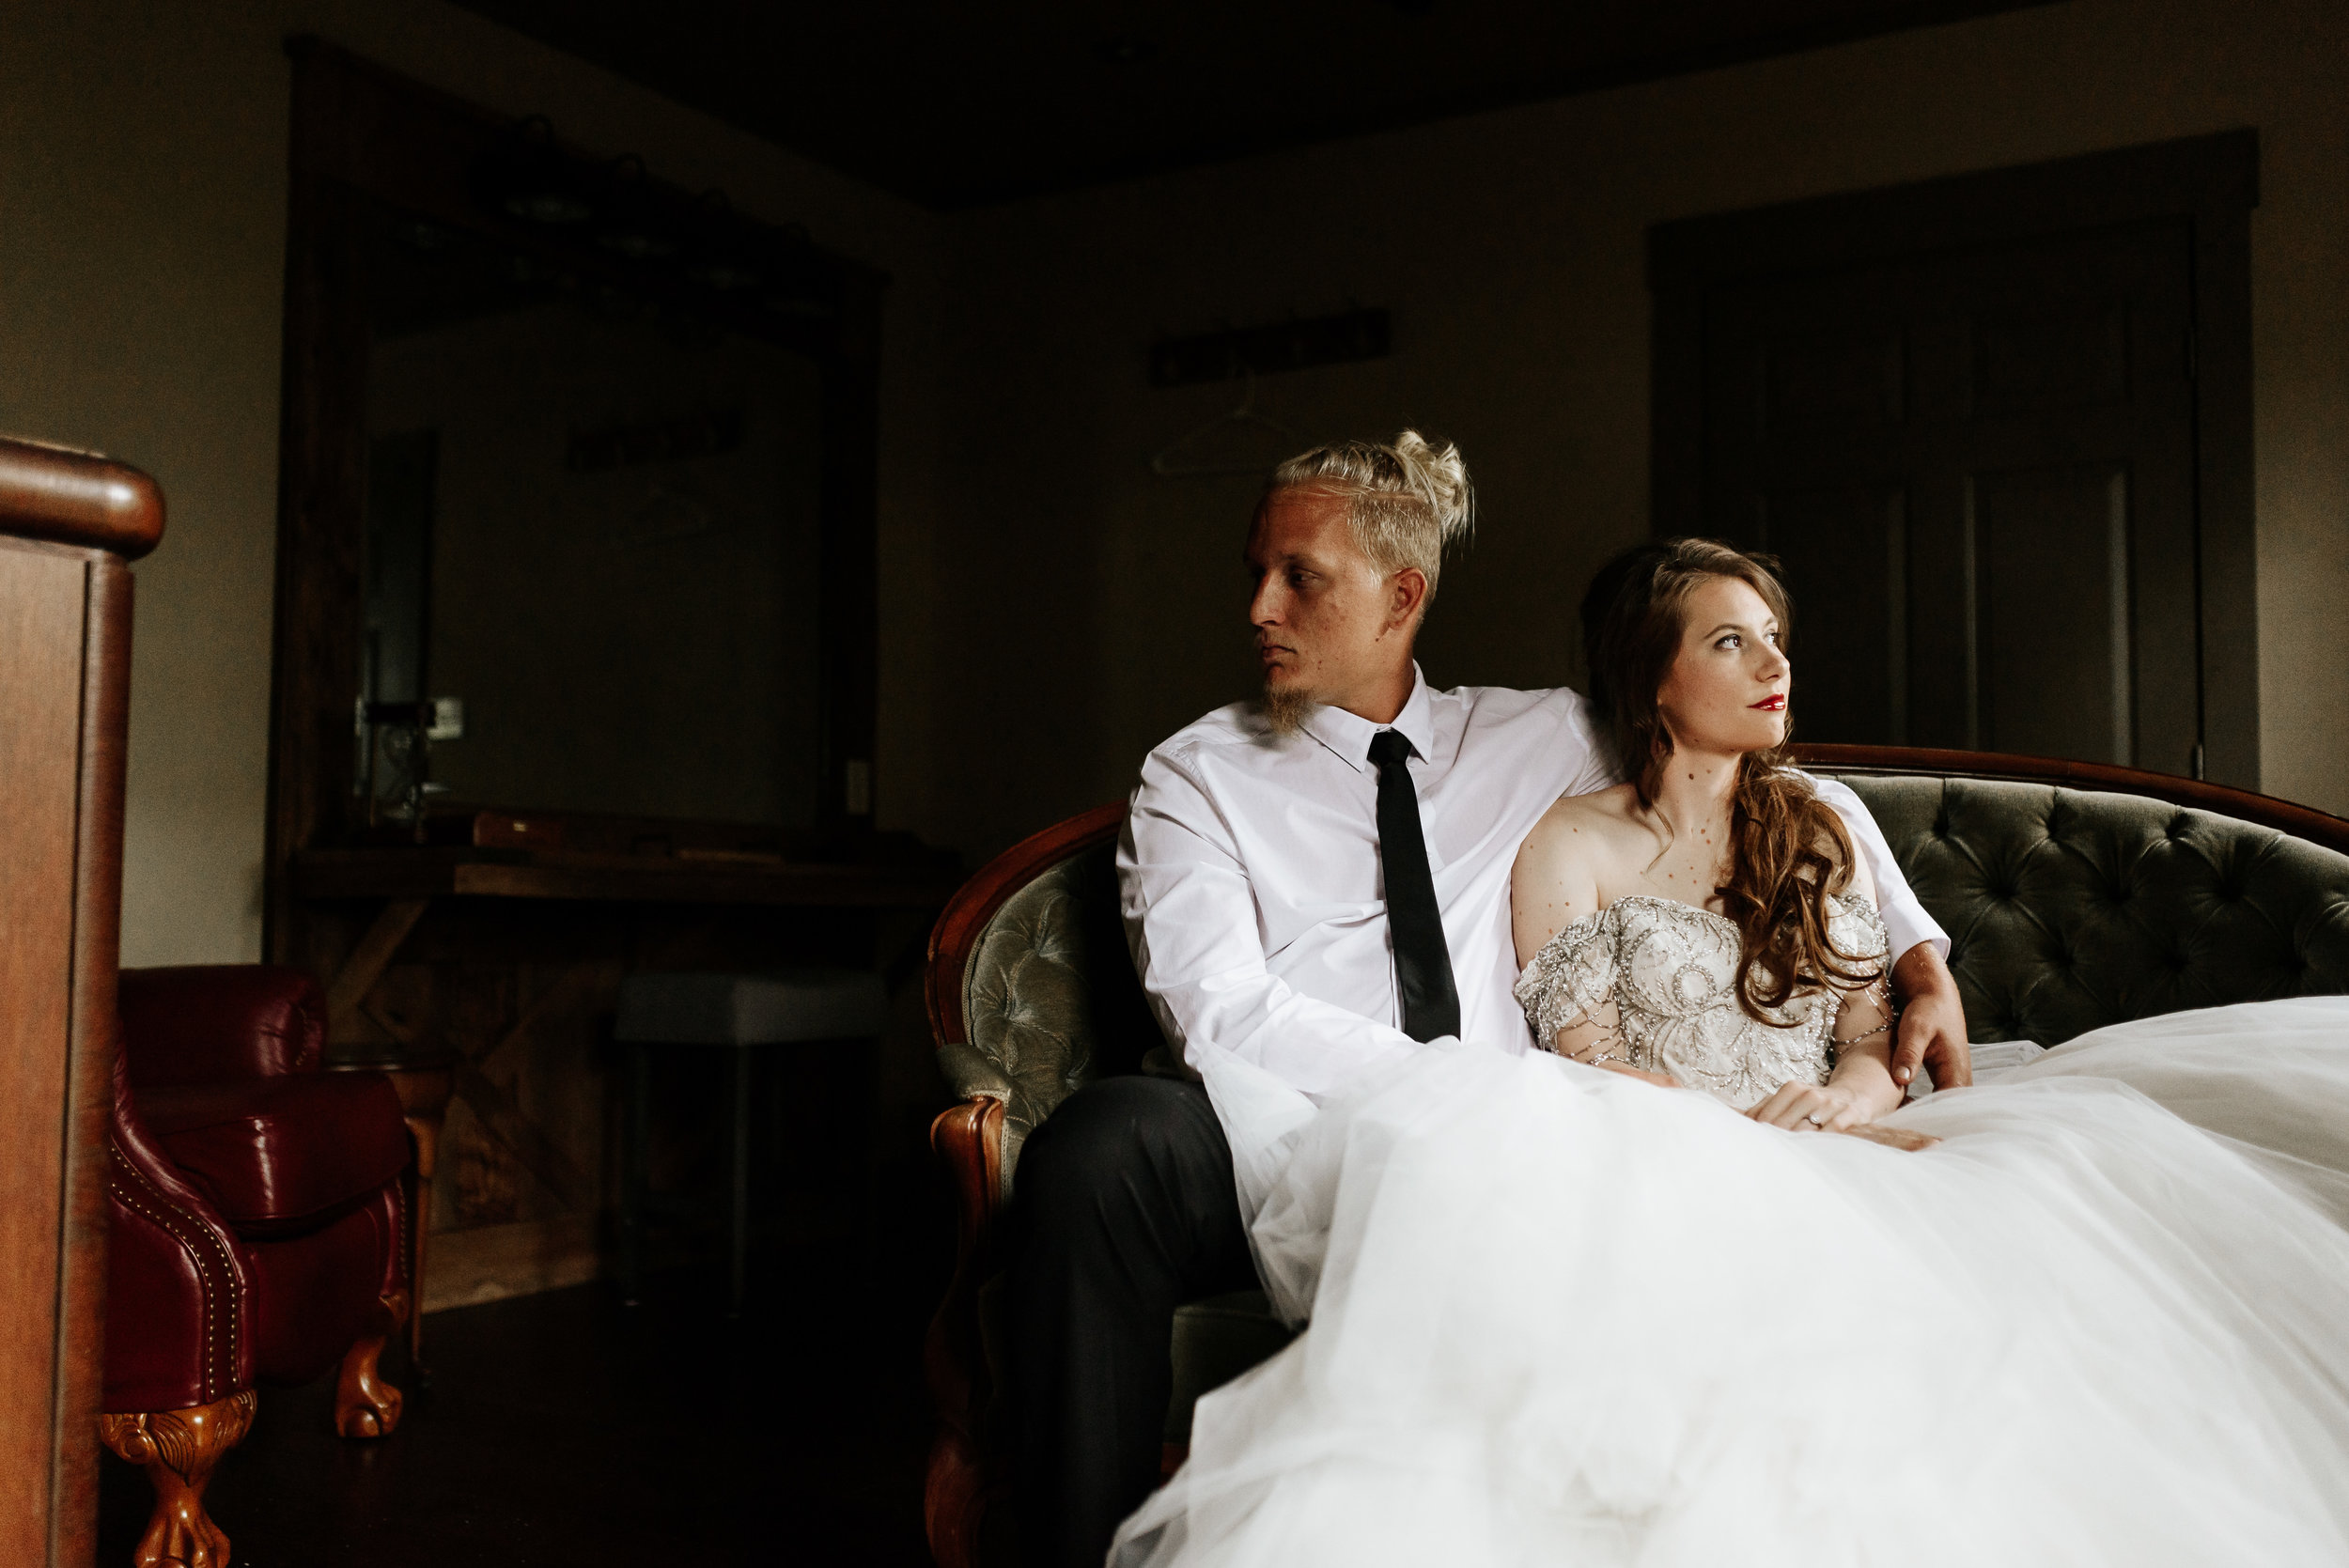 Grant-Station-Styled-Shoot-Whimsical-Moody-Fairytale-Wedding-Photography-by-V-9652.jpg